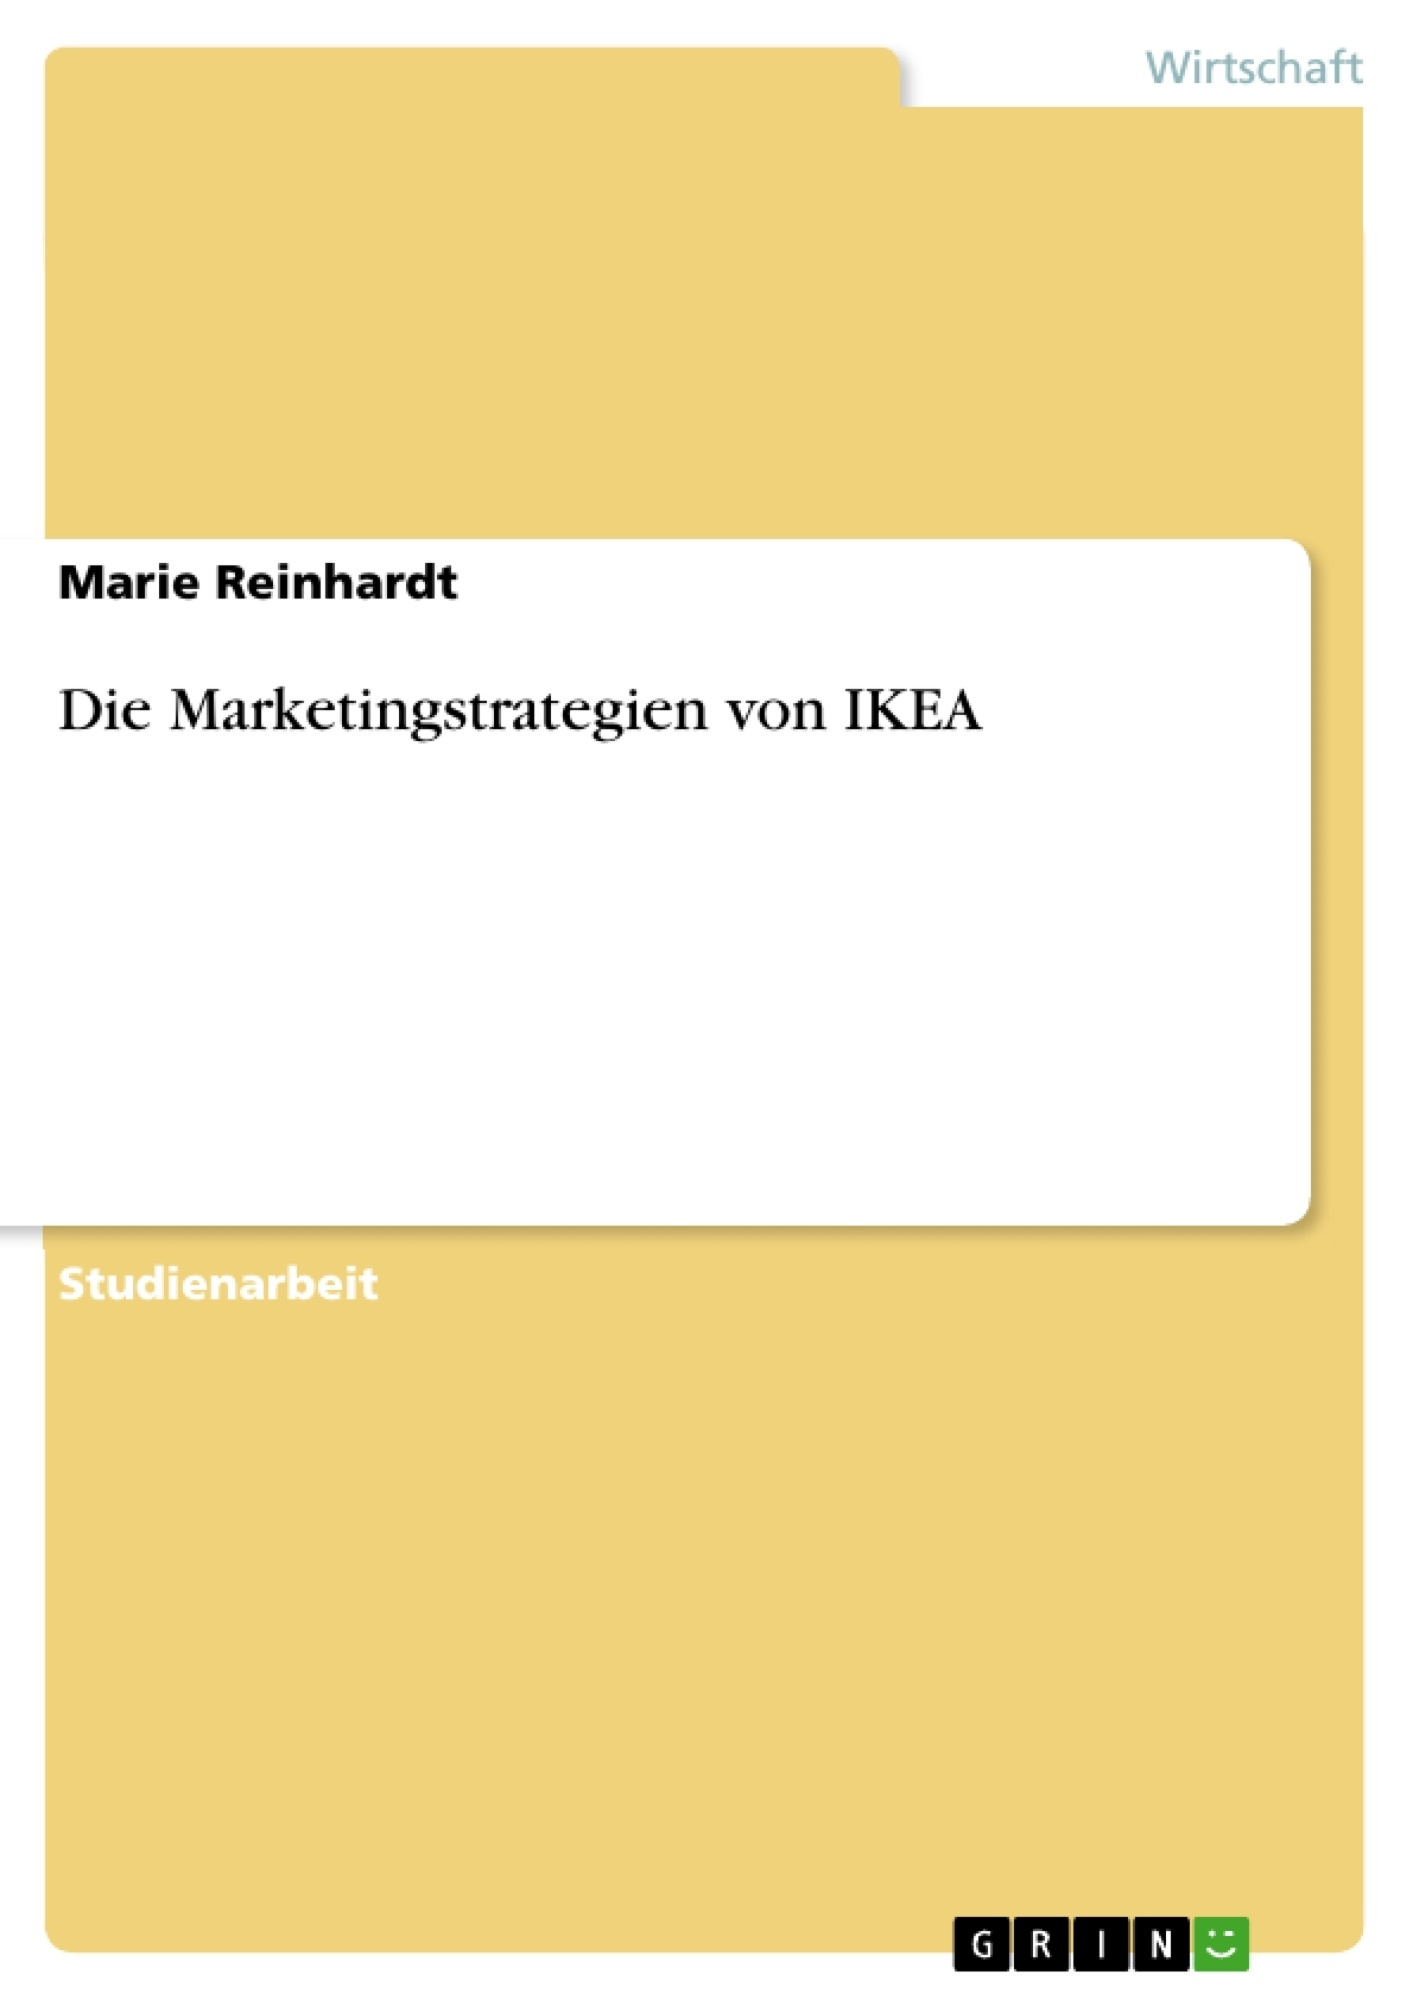 Ikea Küchen Katalog 2016 Pdf Die Marketingstrategien Von Ikea - Grin